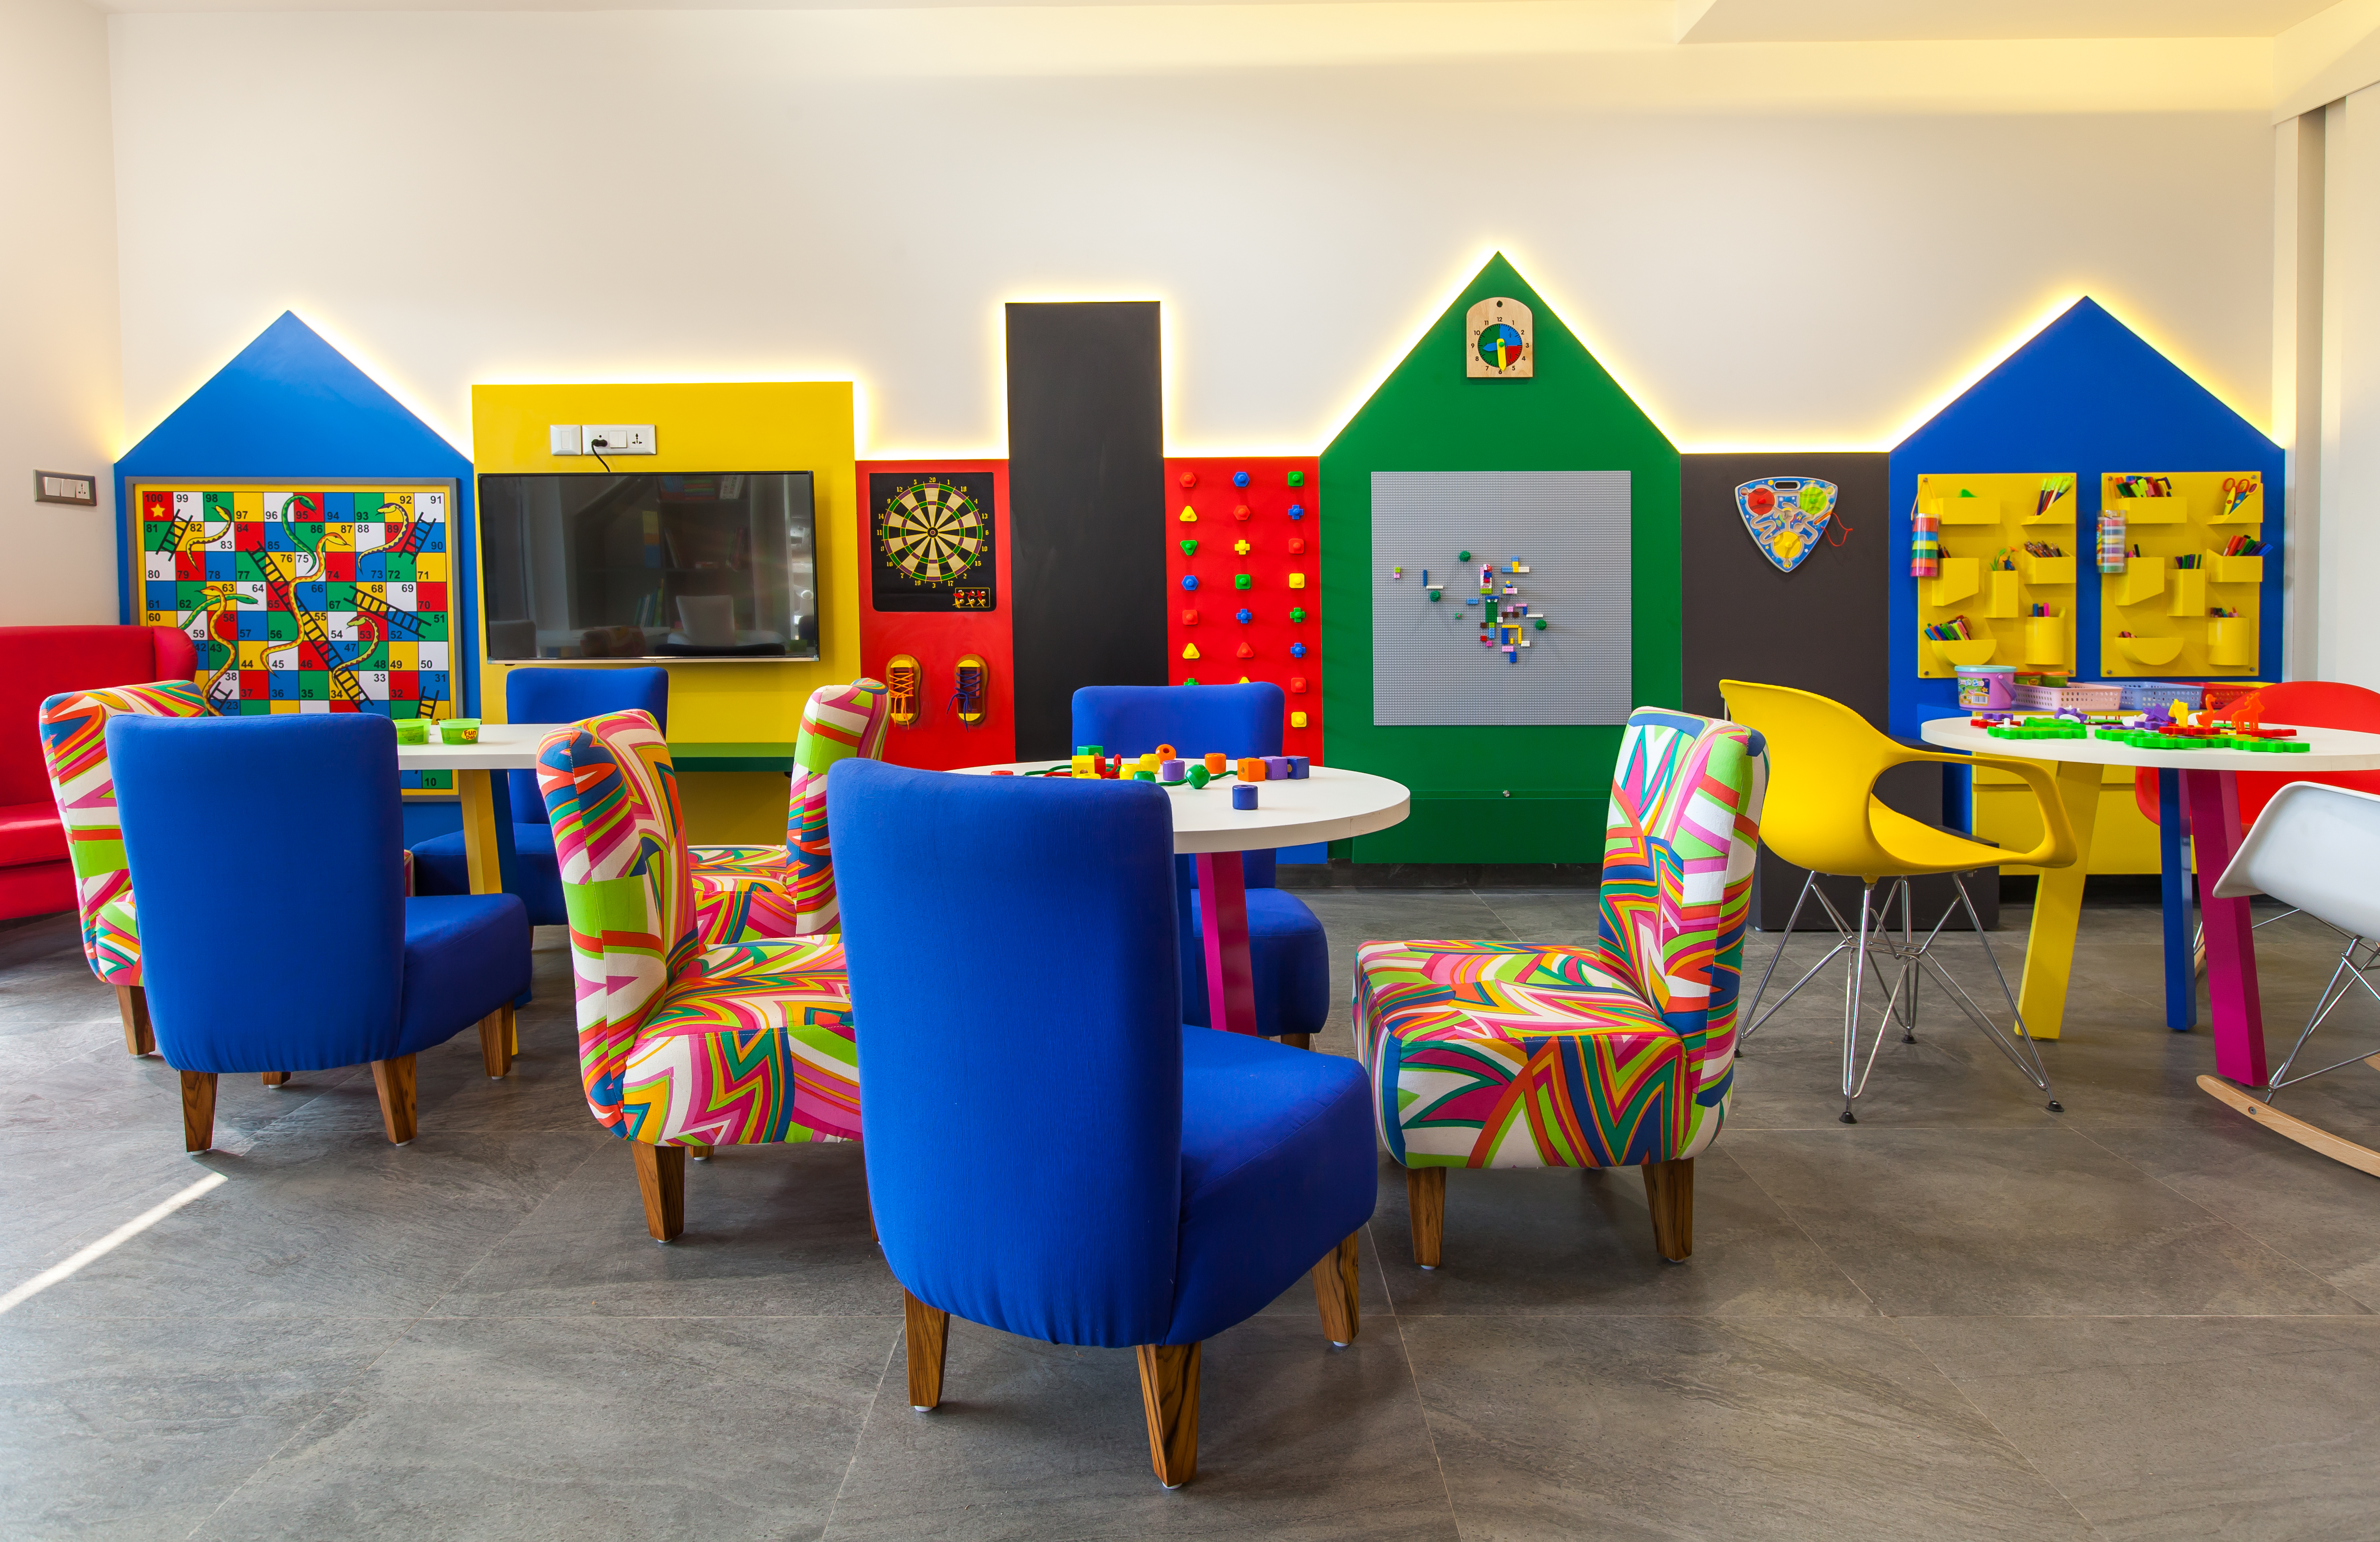 cool decor with funky furniture for kids at flick - all about women